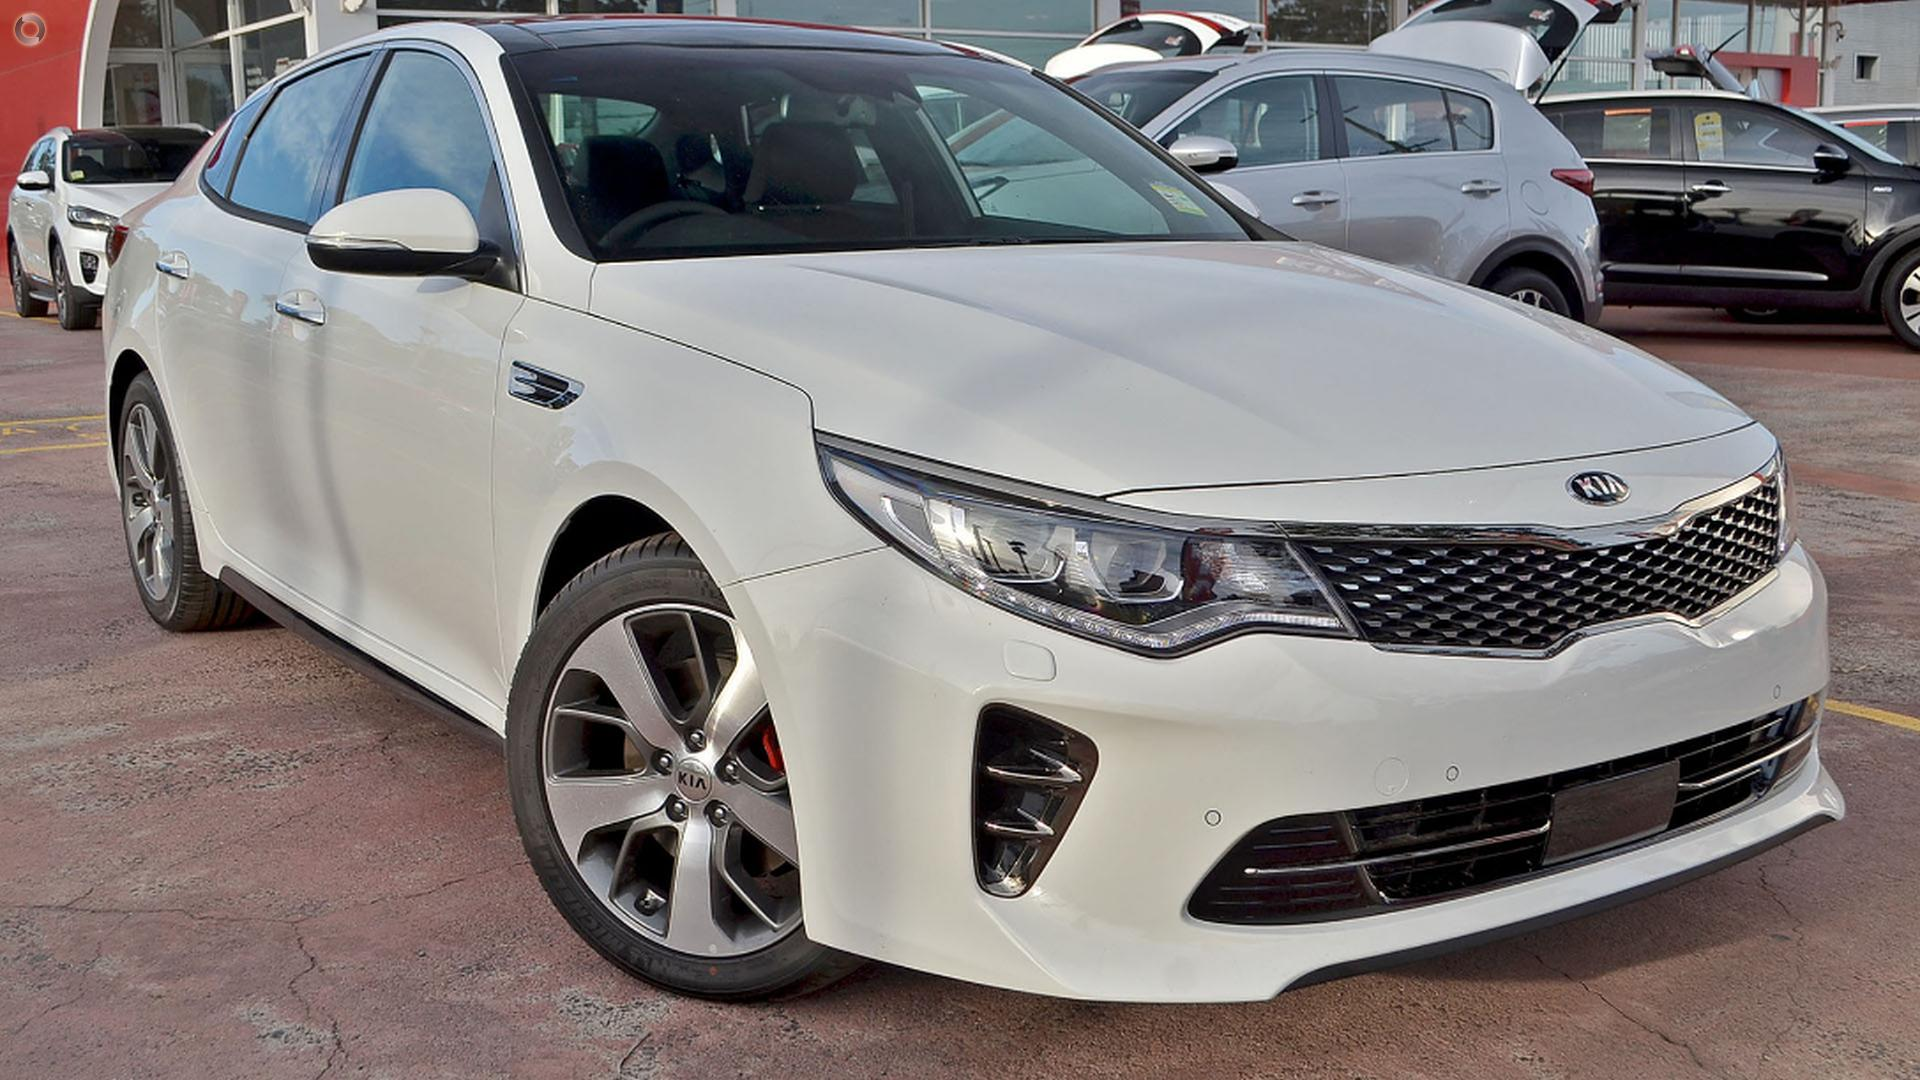 2018 Kia Optima Gt Jf Berwick Motor Group HD Wallpapers Download free images and photos [musssic.tk]